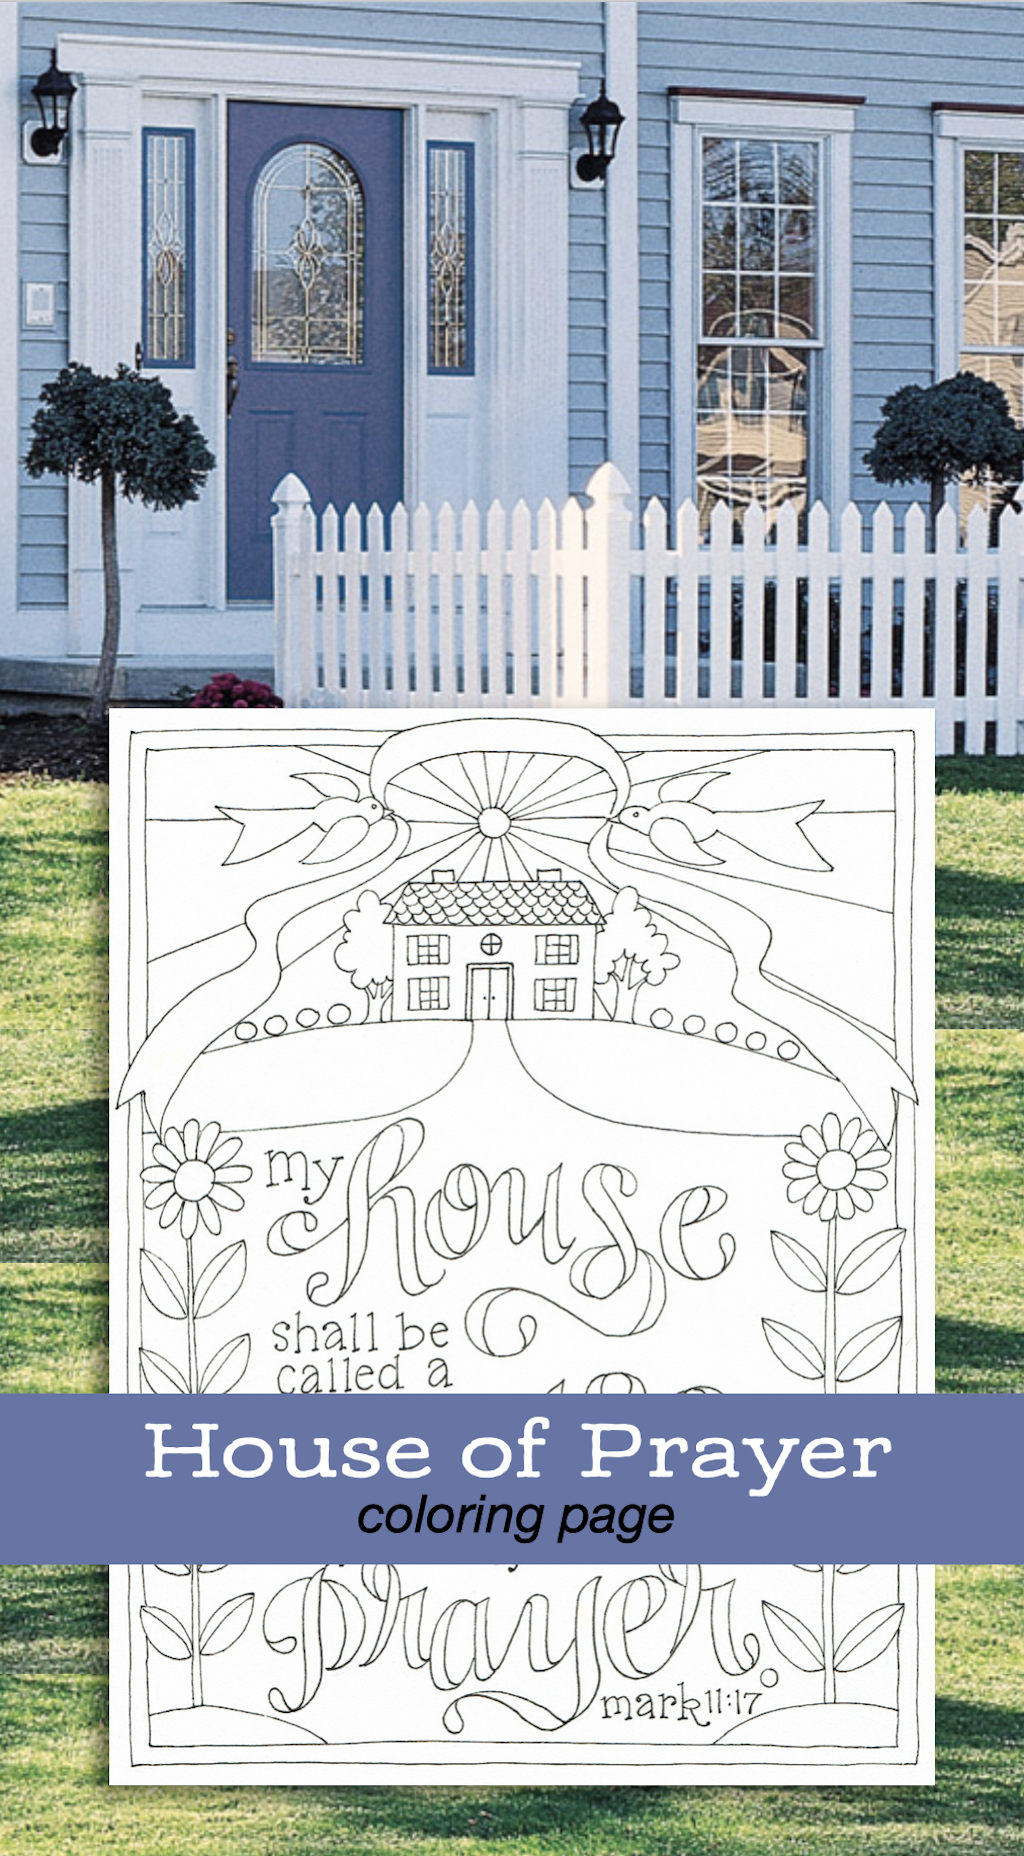 Free Hand Drawn coloring pages featuring favorite Bible verses